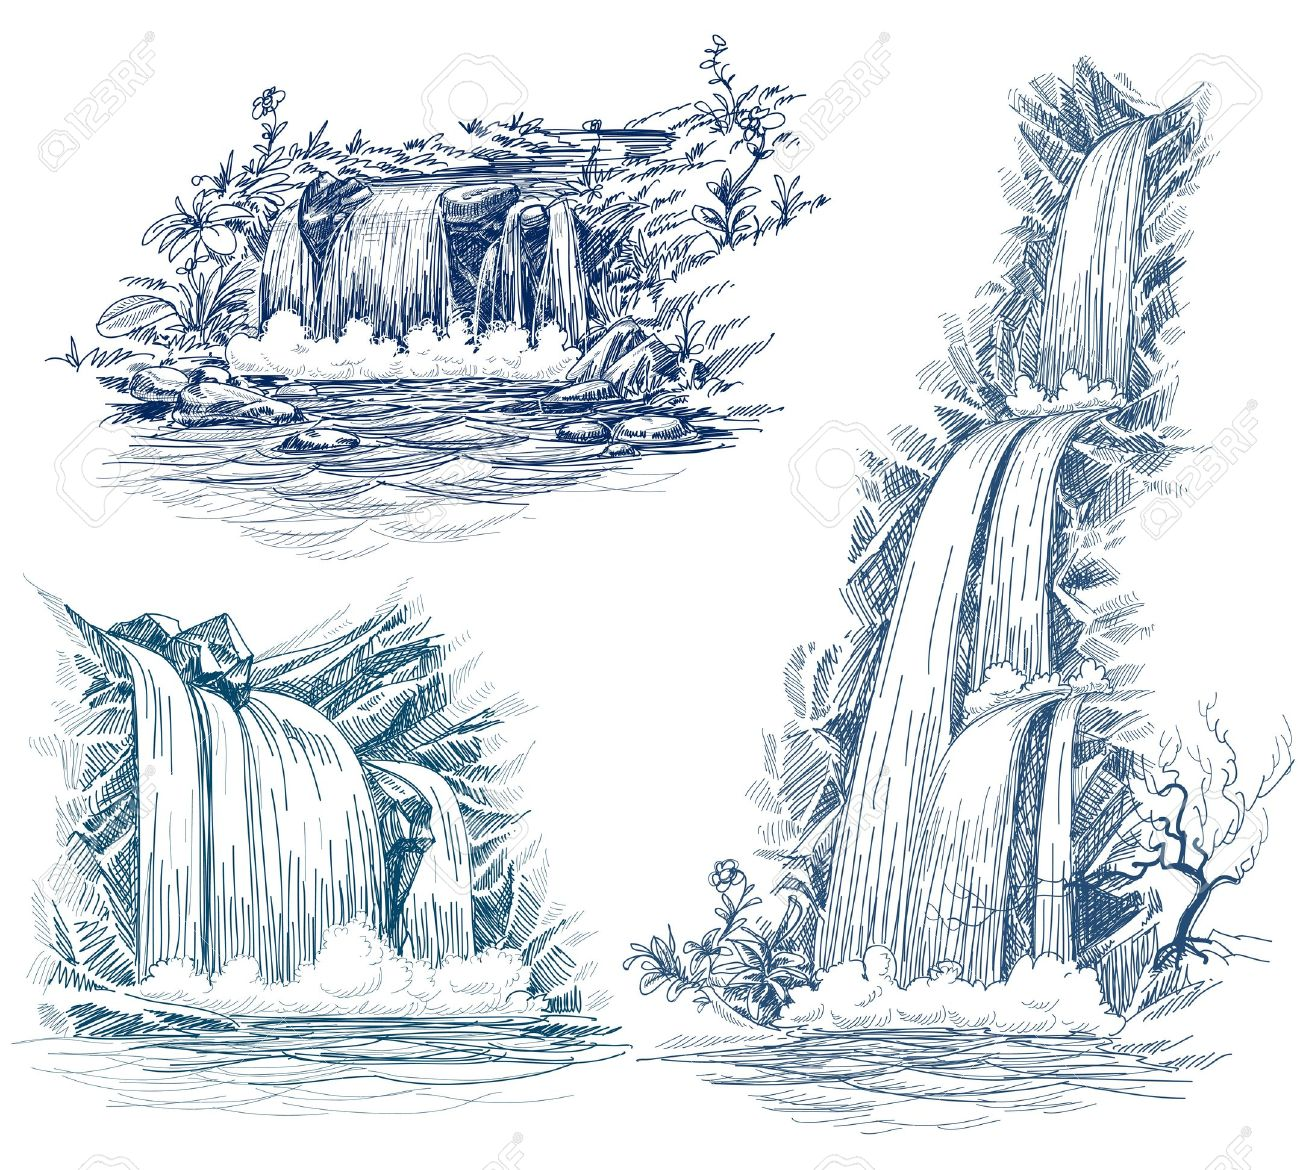 Water falls silhouette clipart.